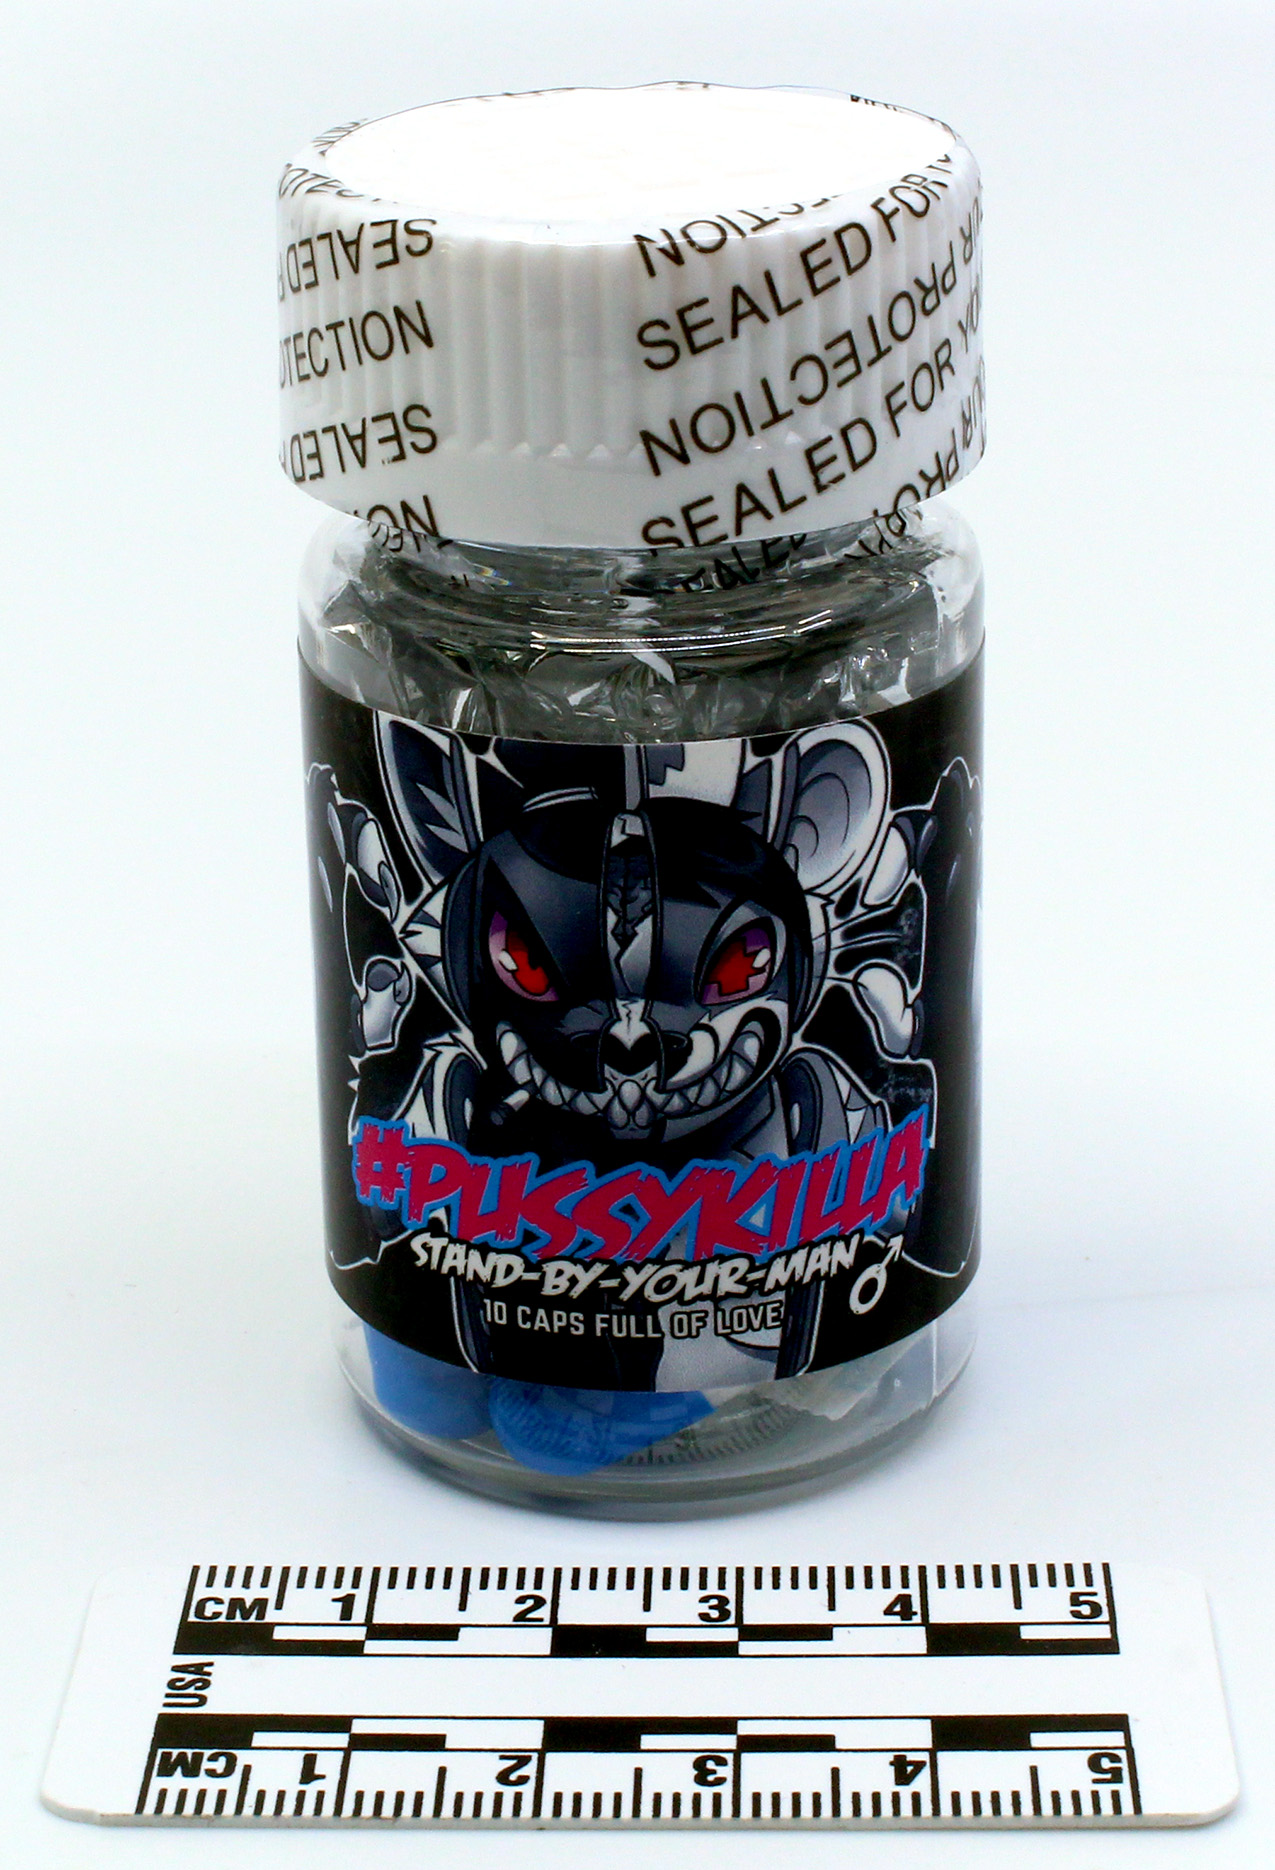 Image of the illigal product: Pussykilla